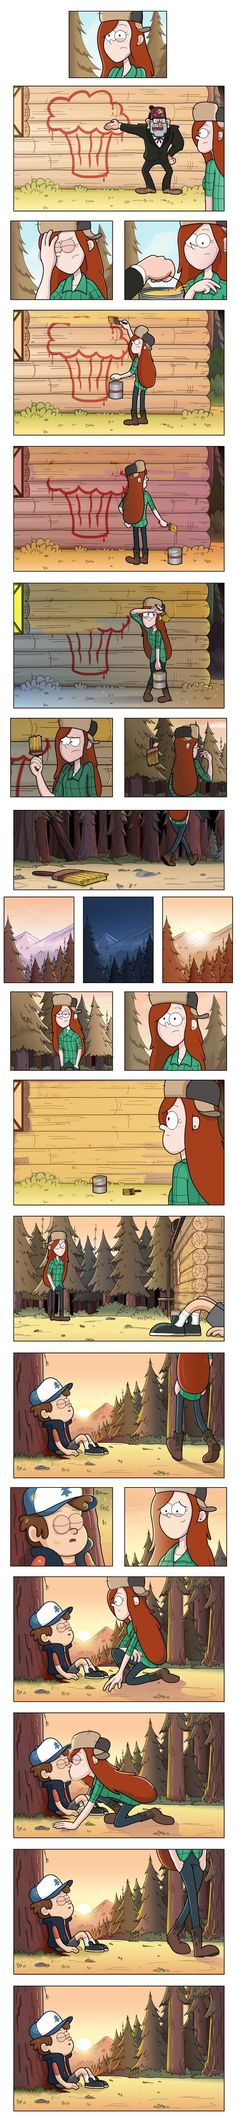 I'm part of many fandoms. This is mostly my Gravity Falls fandom side or my Judylwb Idoov fandom Dipper And Wendy, Dipper And Mabel, Gravity Falls Comics, Gravity Falls Art, Gavity Falls, Desenhos Gravity Falls, Reverse Falls, Disney Shows, Star Vs The Forces Of Evil